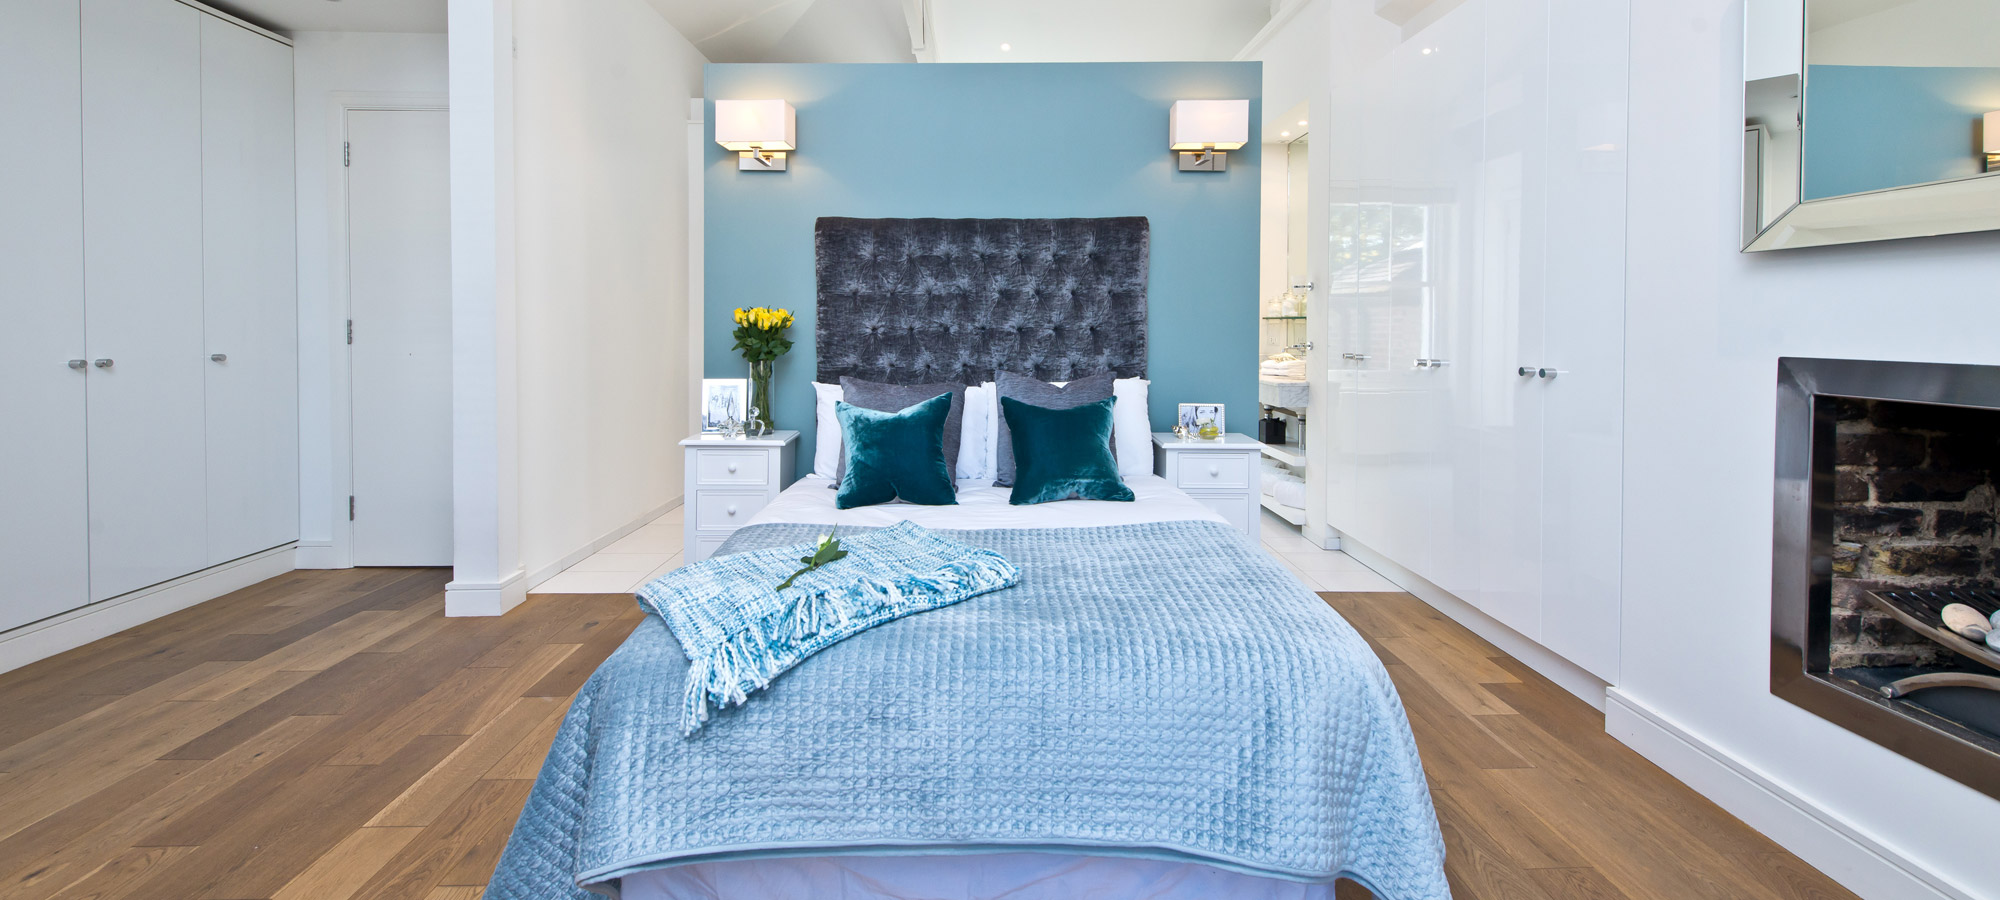 Limerston Place Interior Design Bedroom